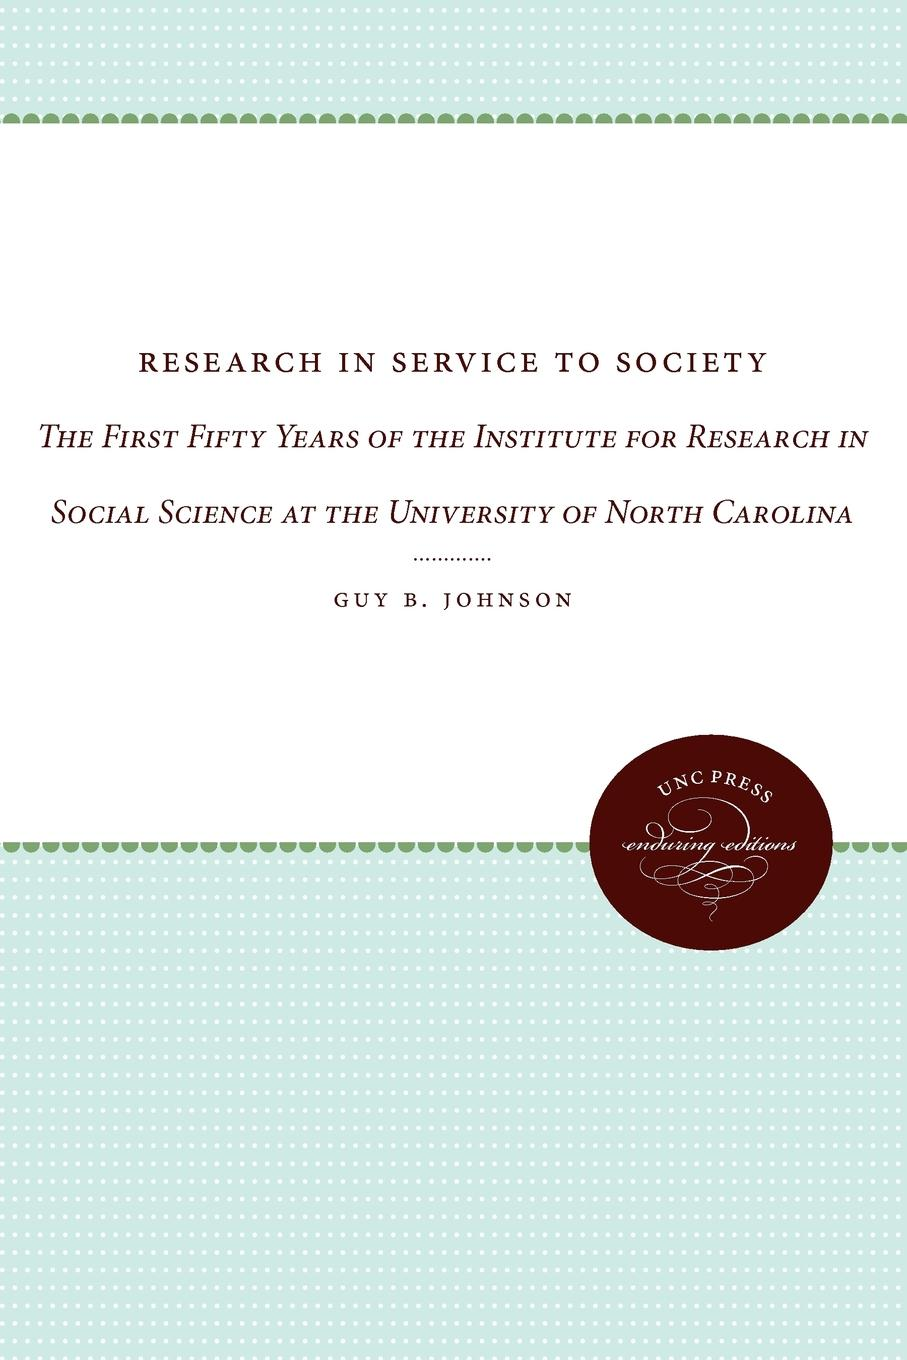 Guy B. Johnson Research in Service to Society. The First Fifty Years of the Institute for Research in Social Science at the University of North Carolina f g carpenter south america social industrial and political